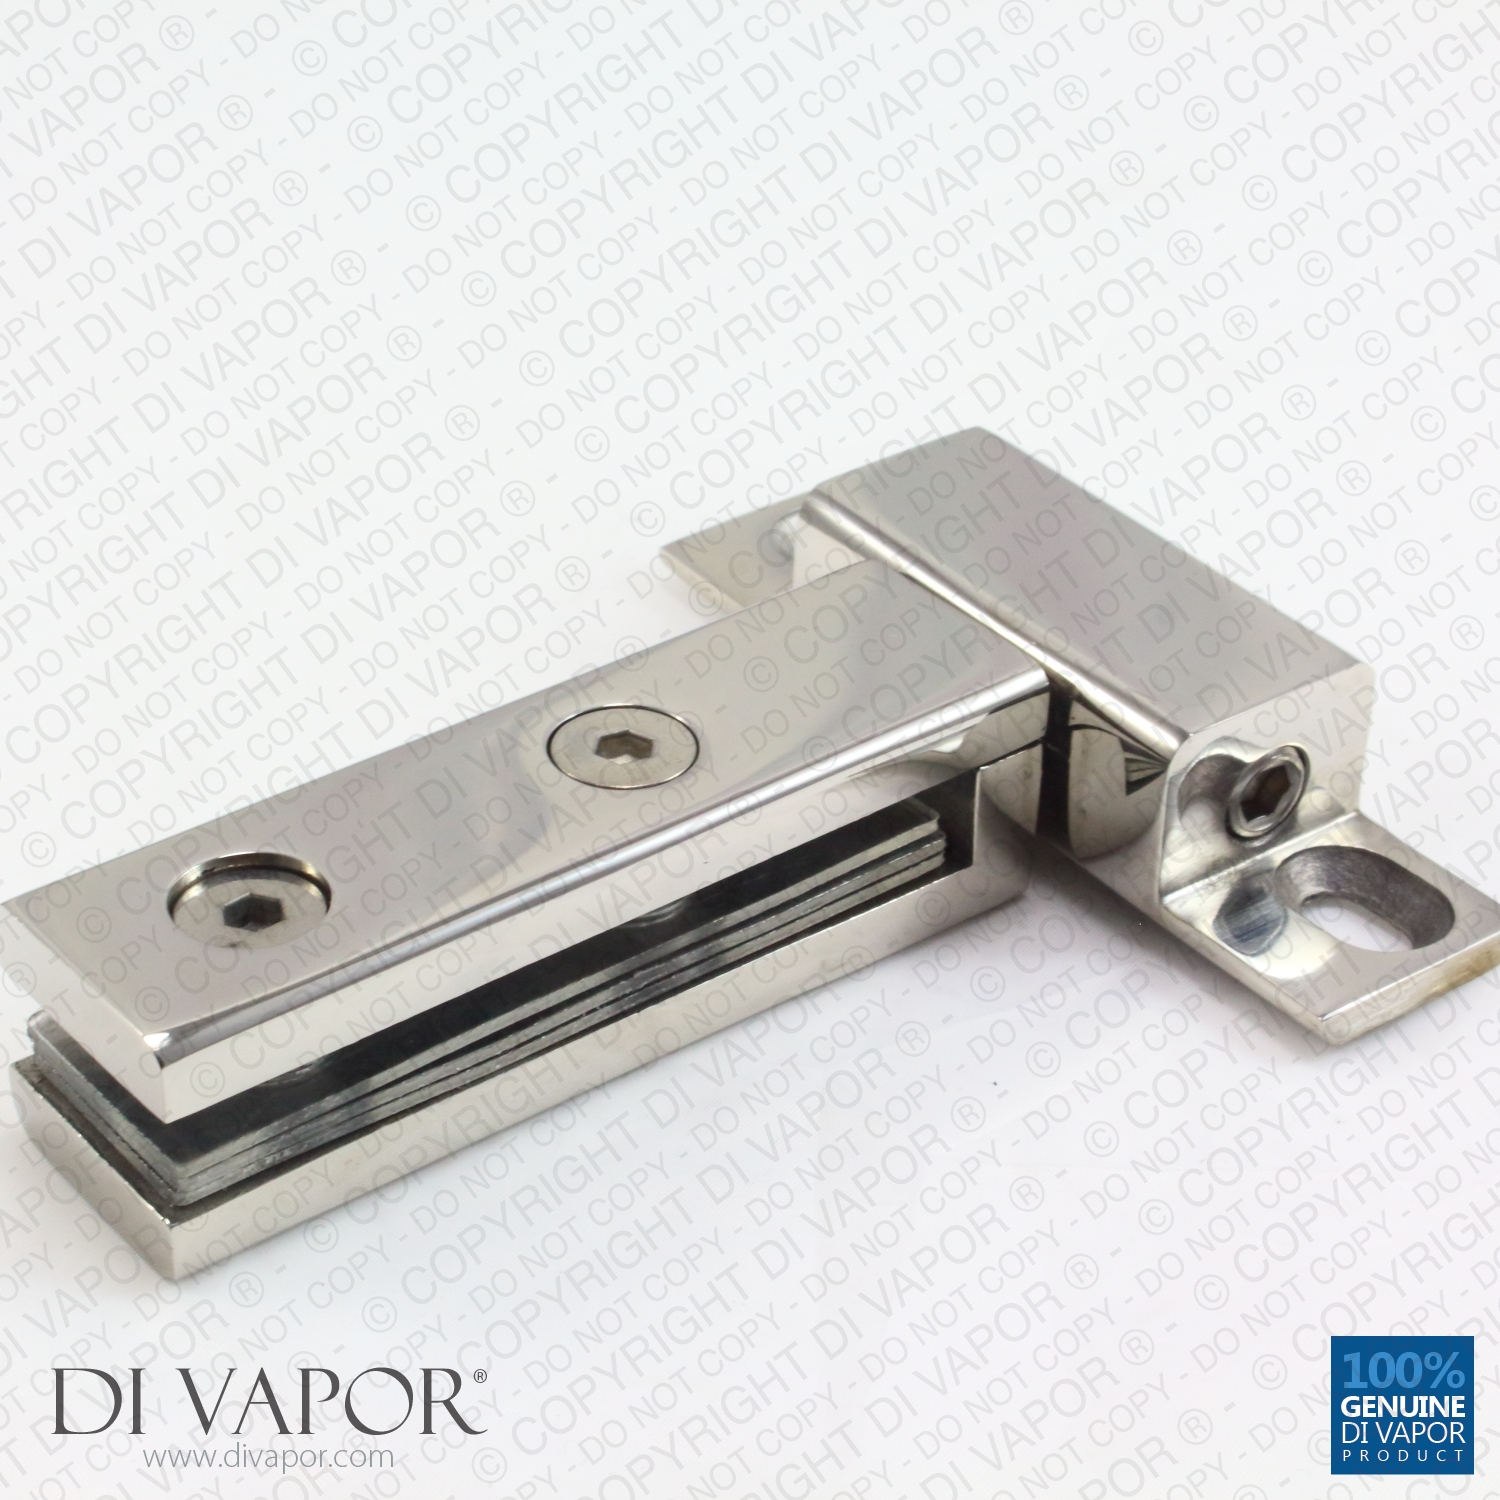 360 Degree Shower Door Pivot Hinge Part 40mm Hole To